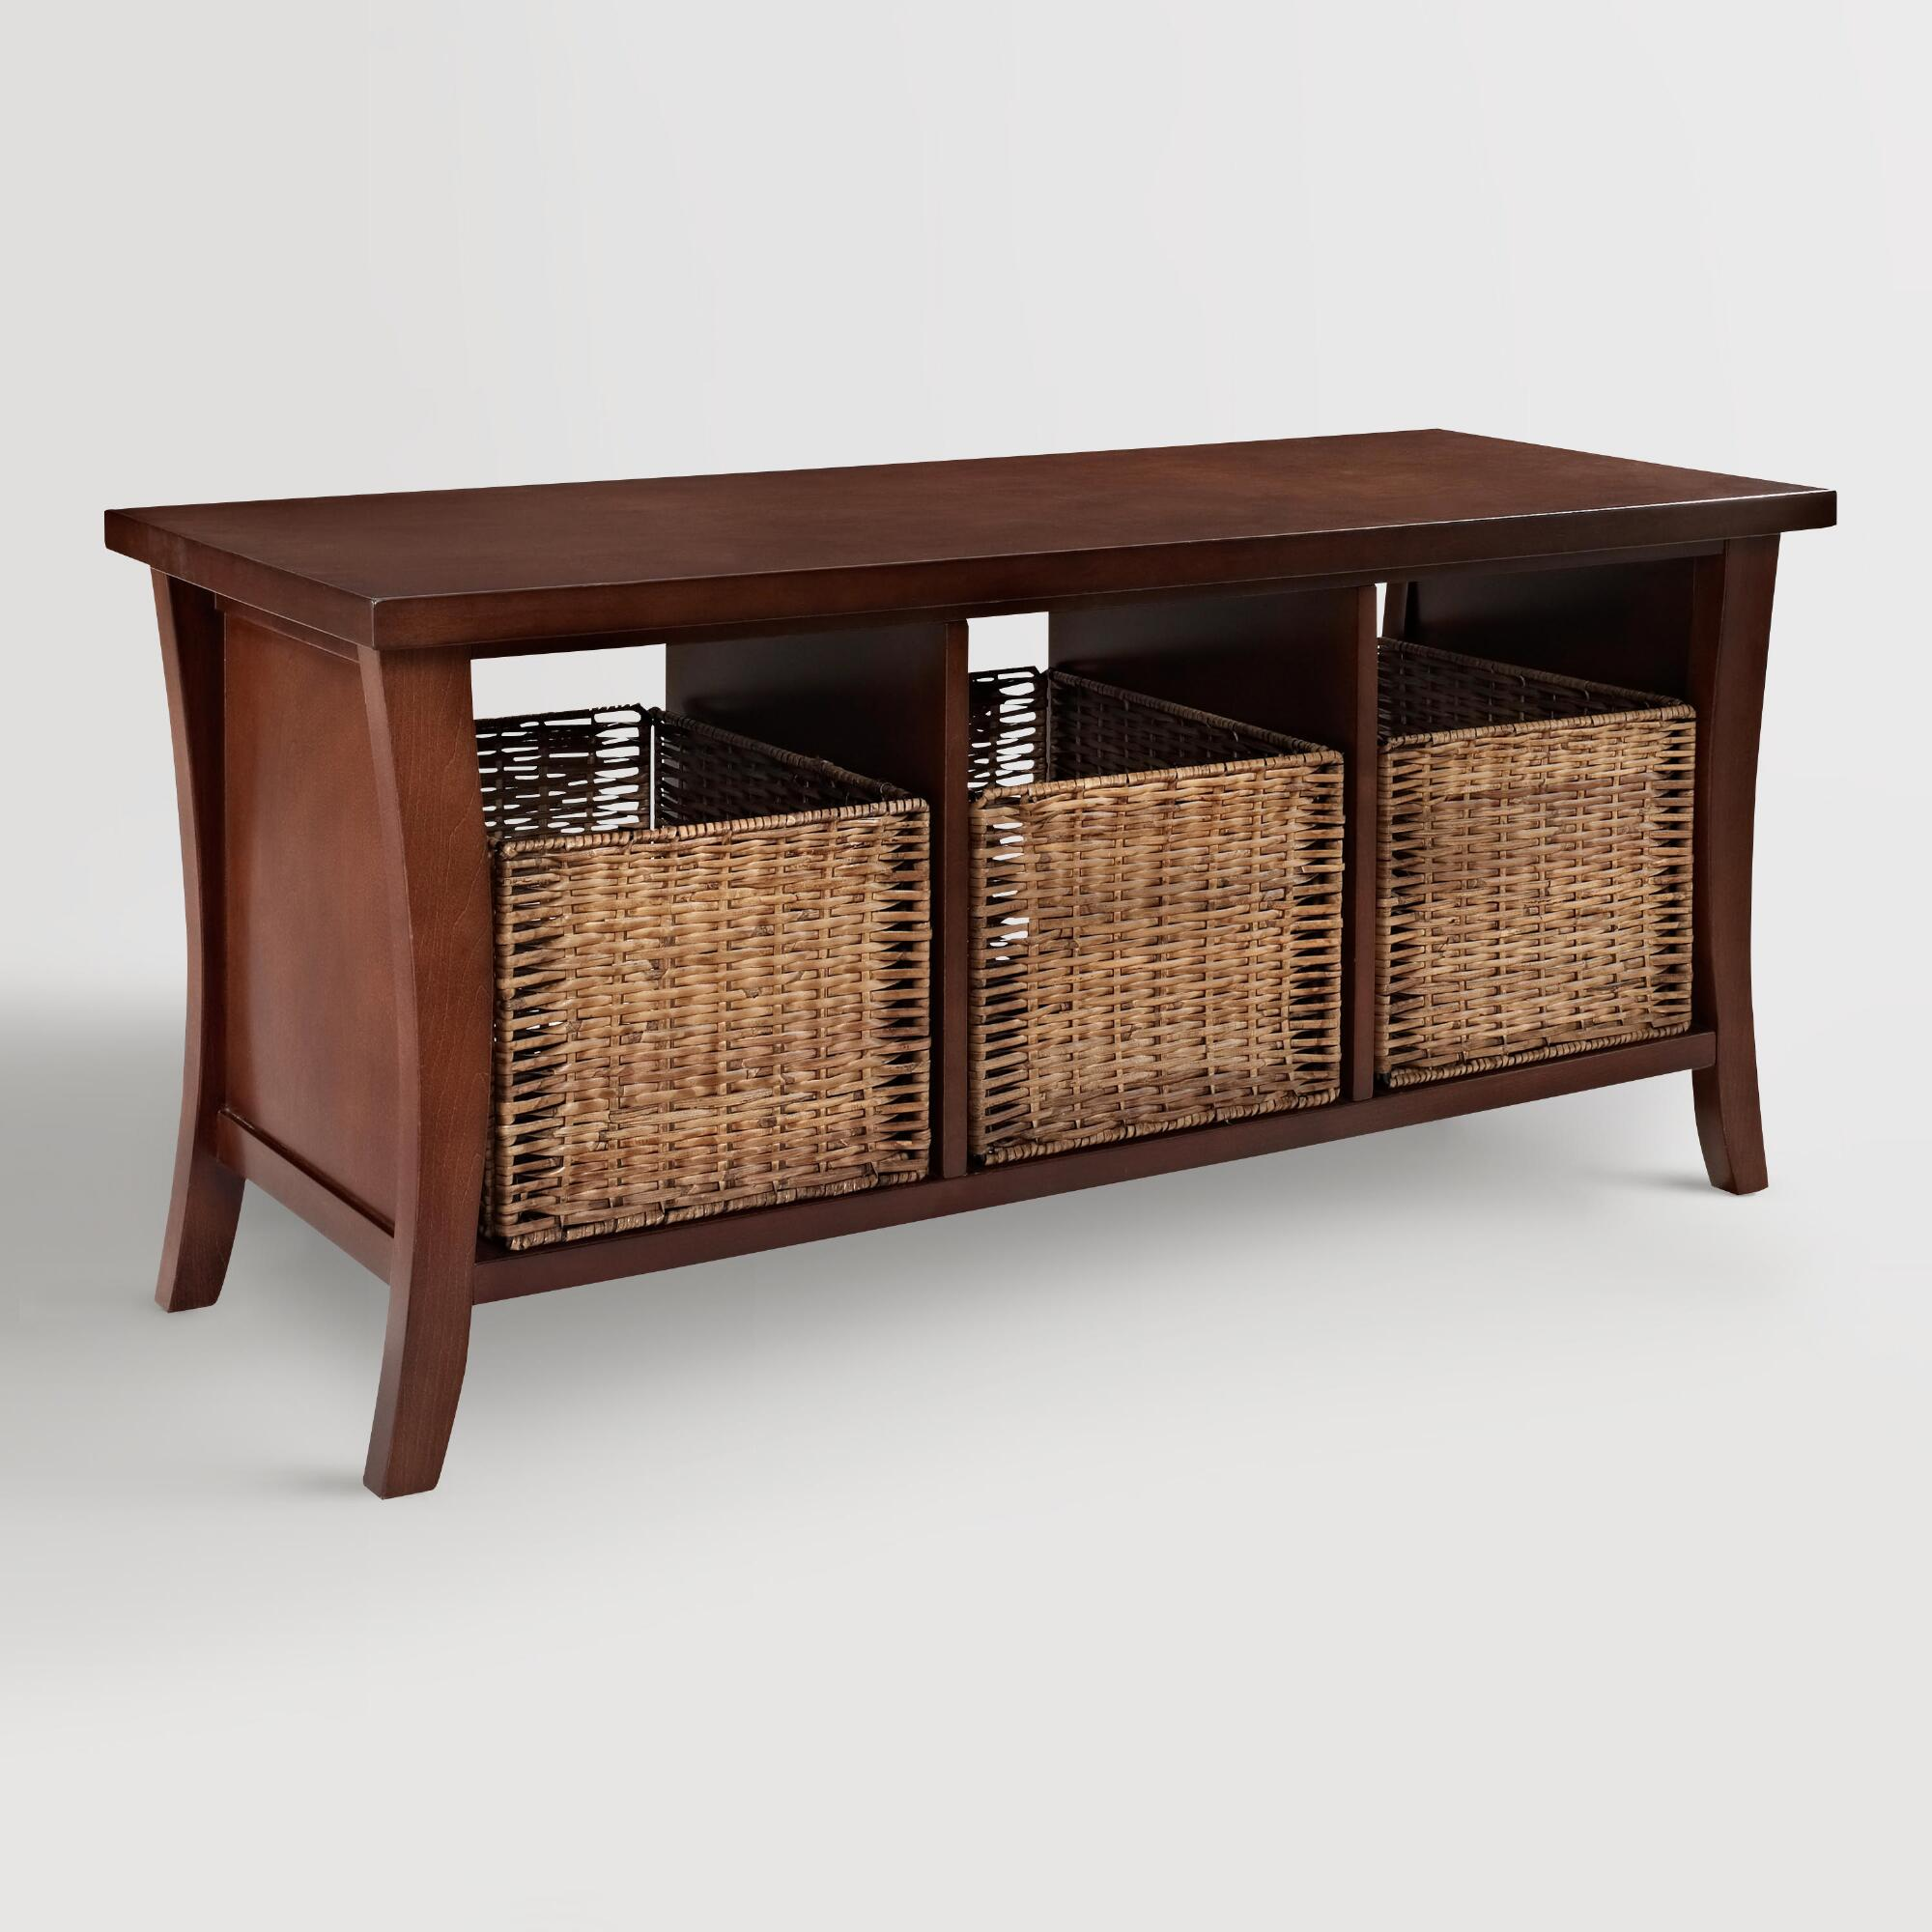 Mahogany wood cassia entryway storage bench with baskets world market Bench with baskets